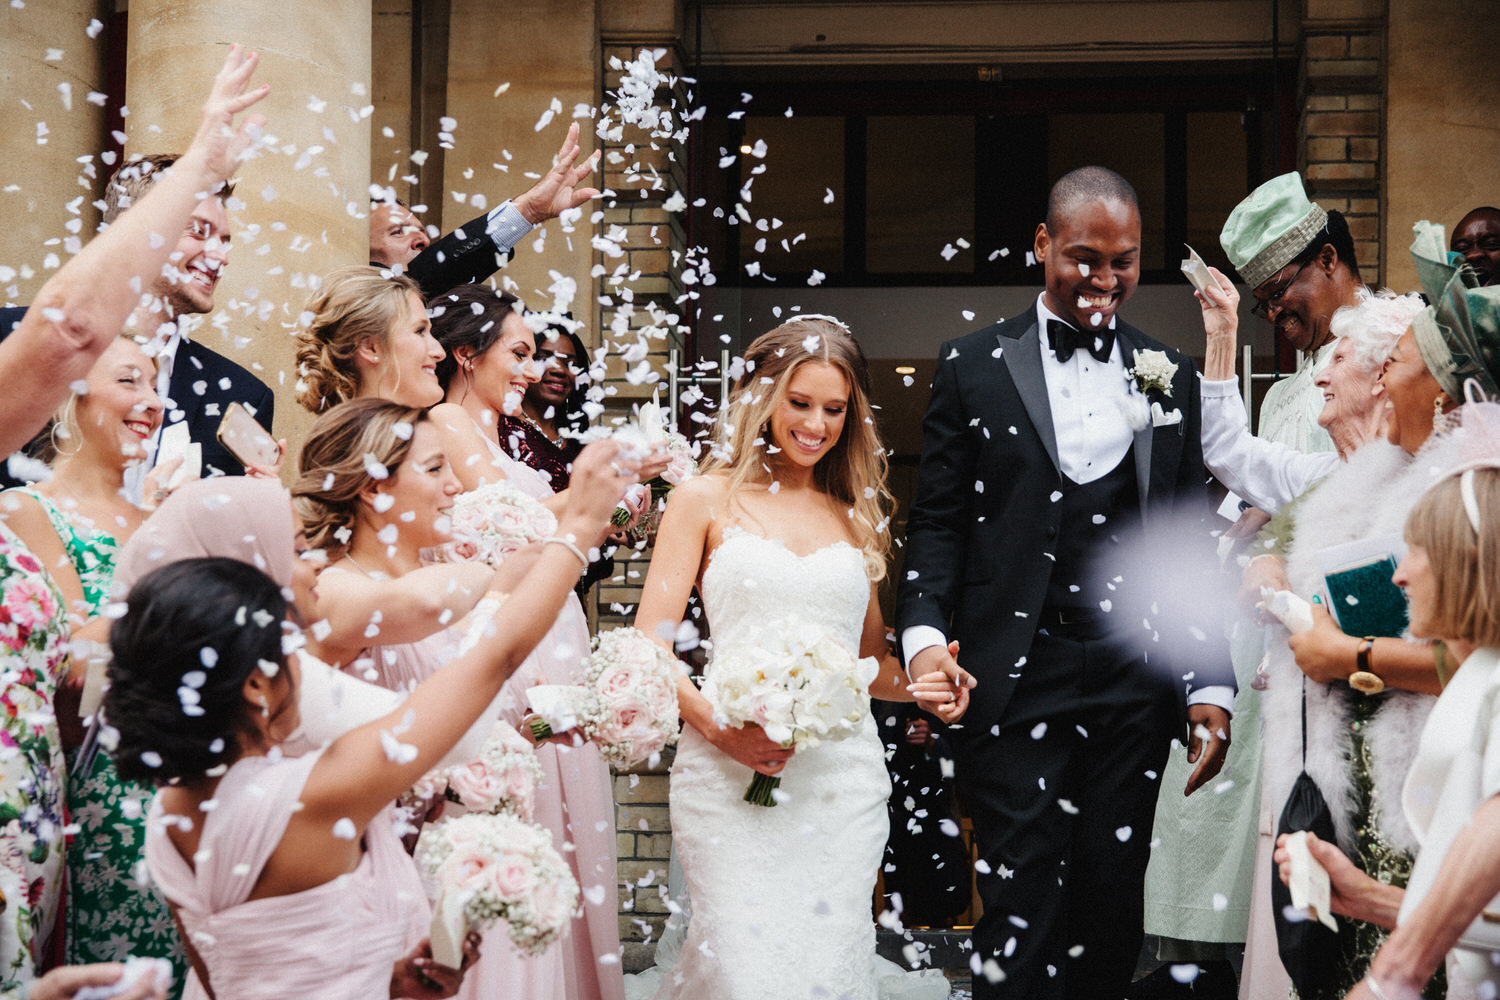 Bride and groom walk through confetti thrown by guests